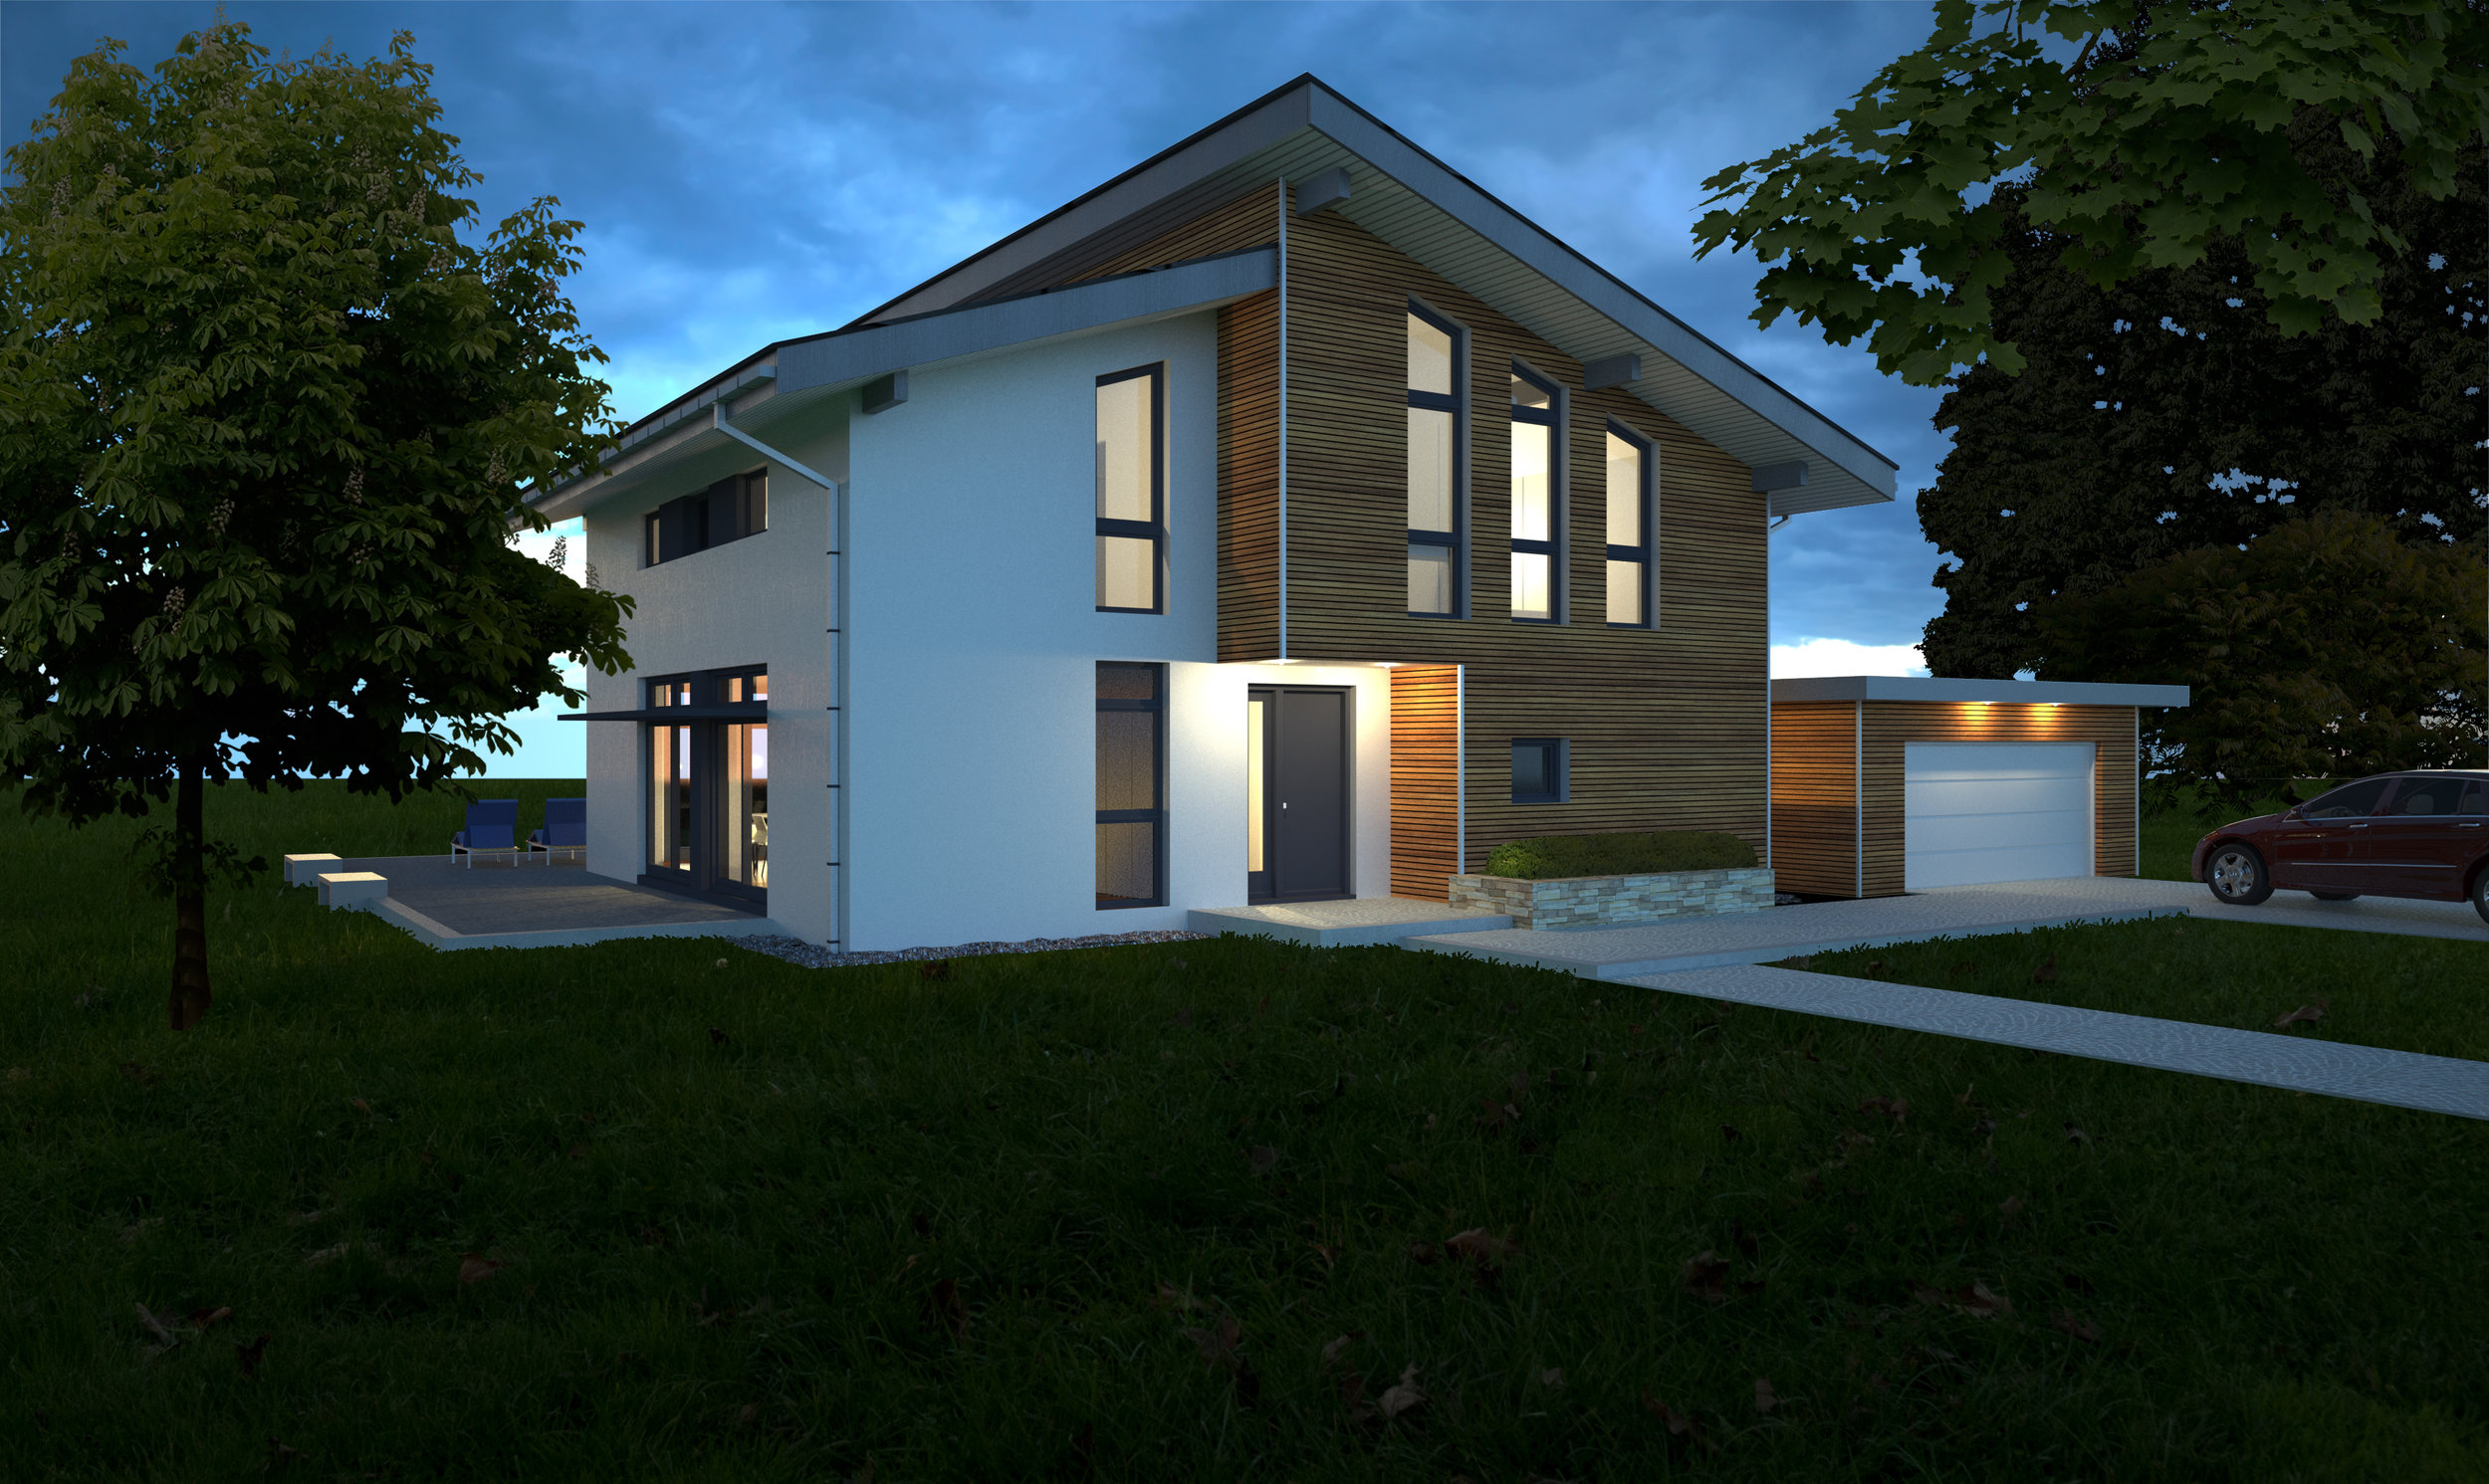 Street-side view of modern chalet-style home.